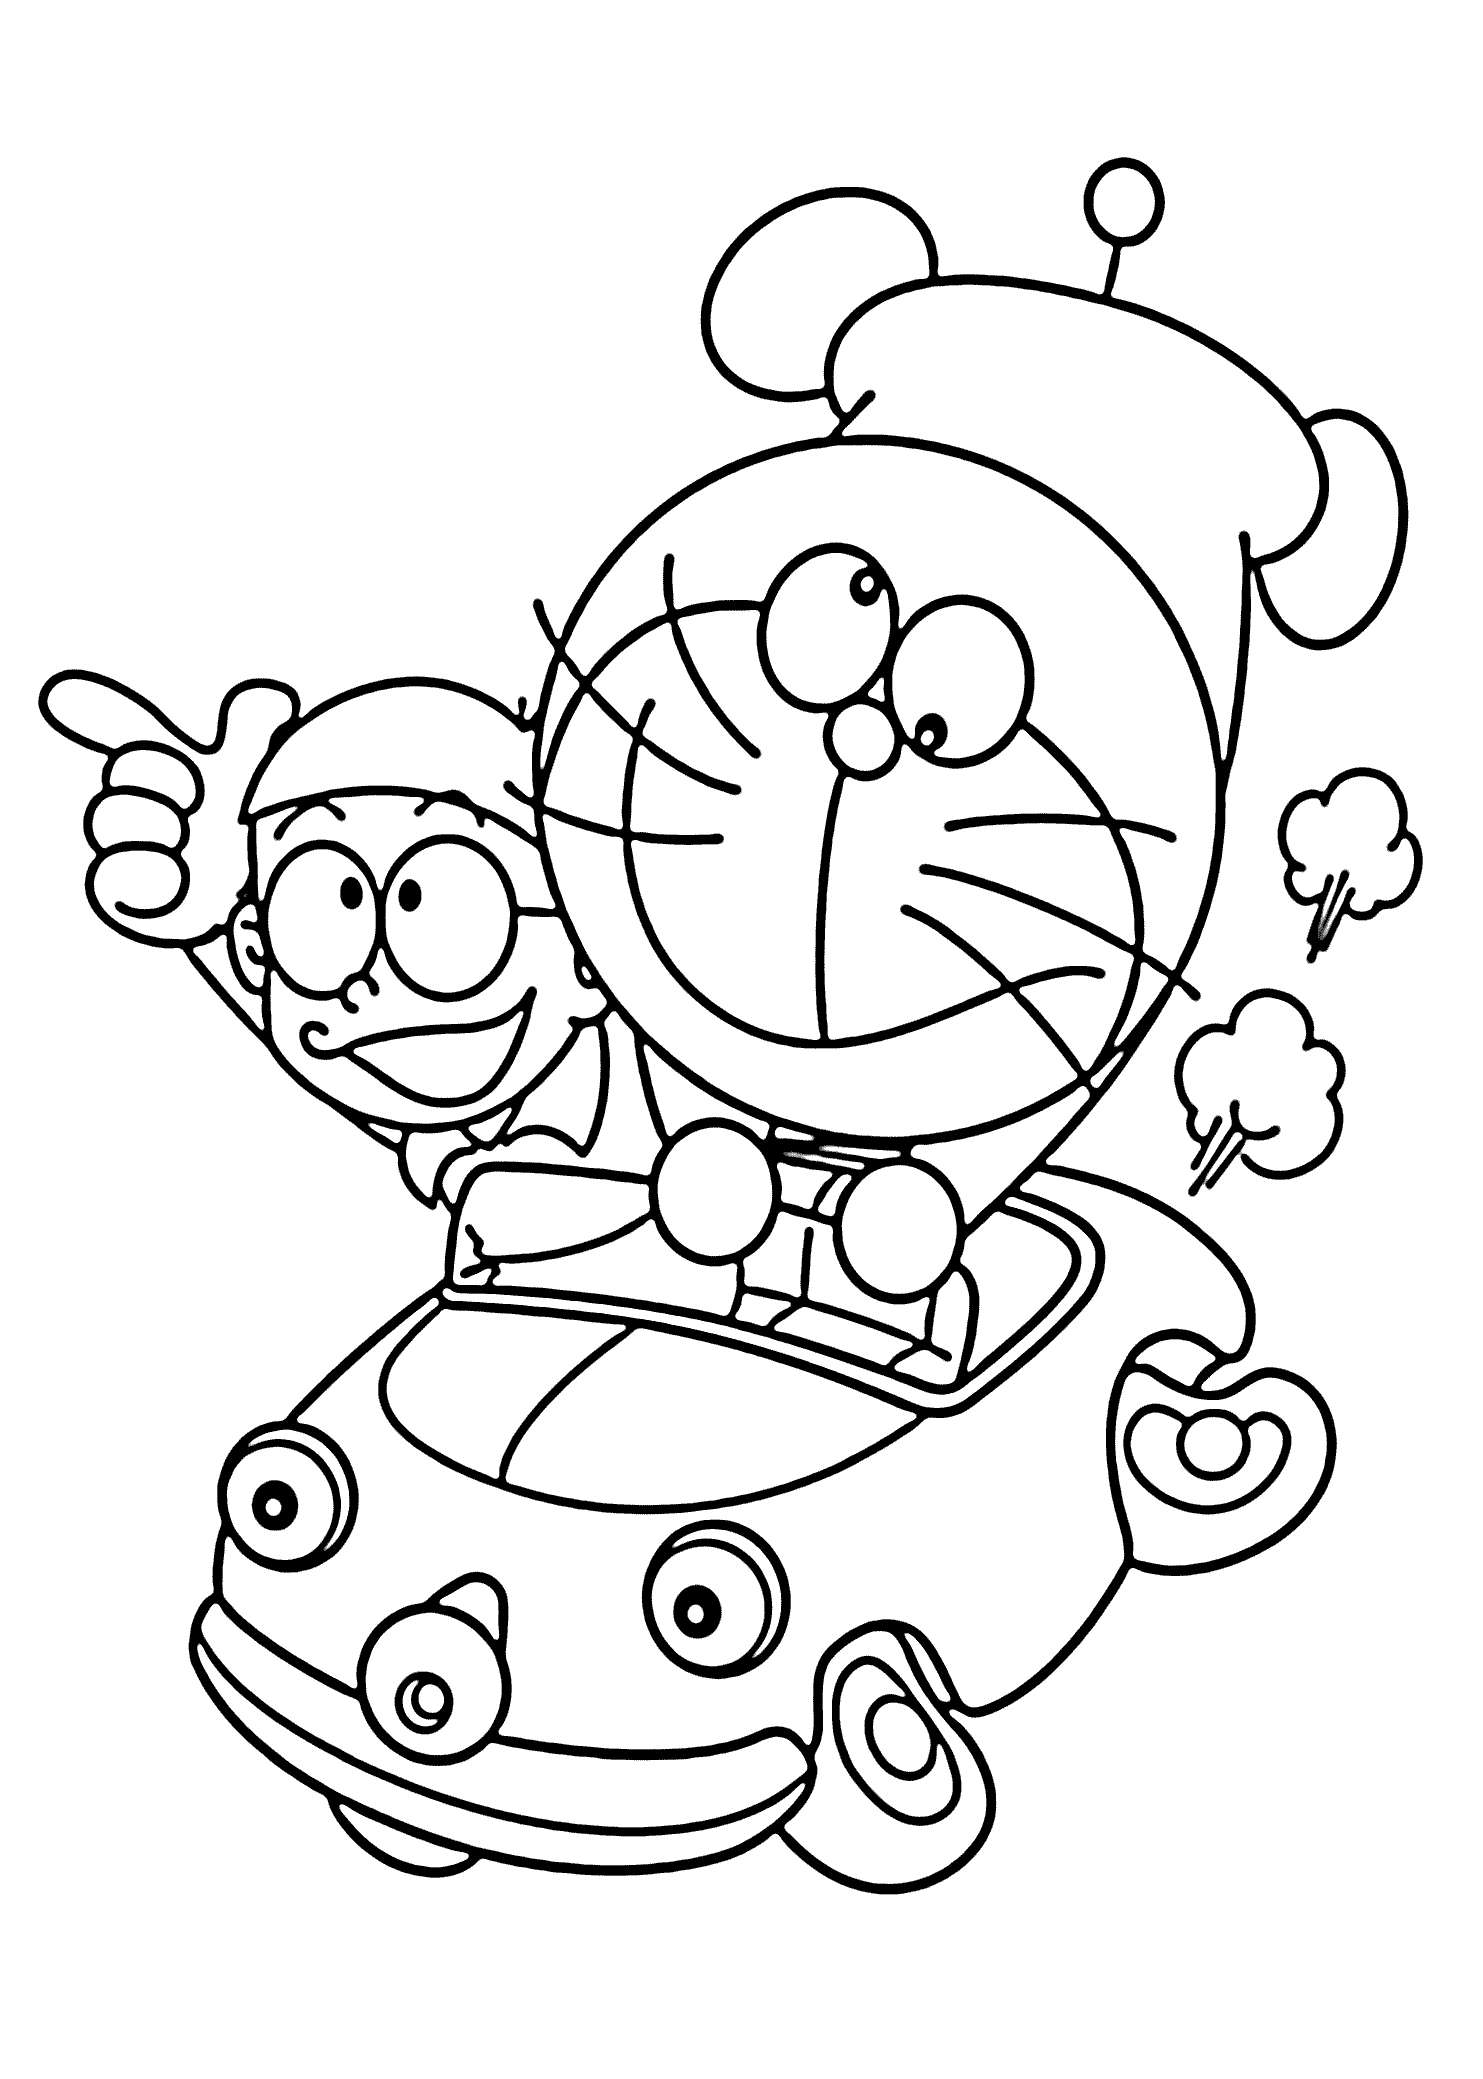 Christmas Dragon Coloring Pages With Kid Goku Ball Z